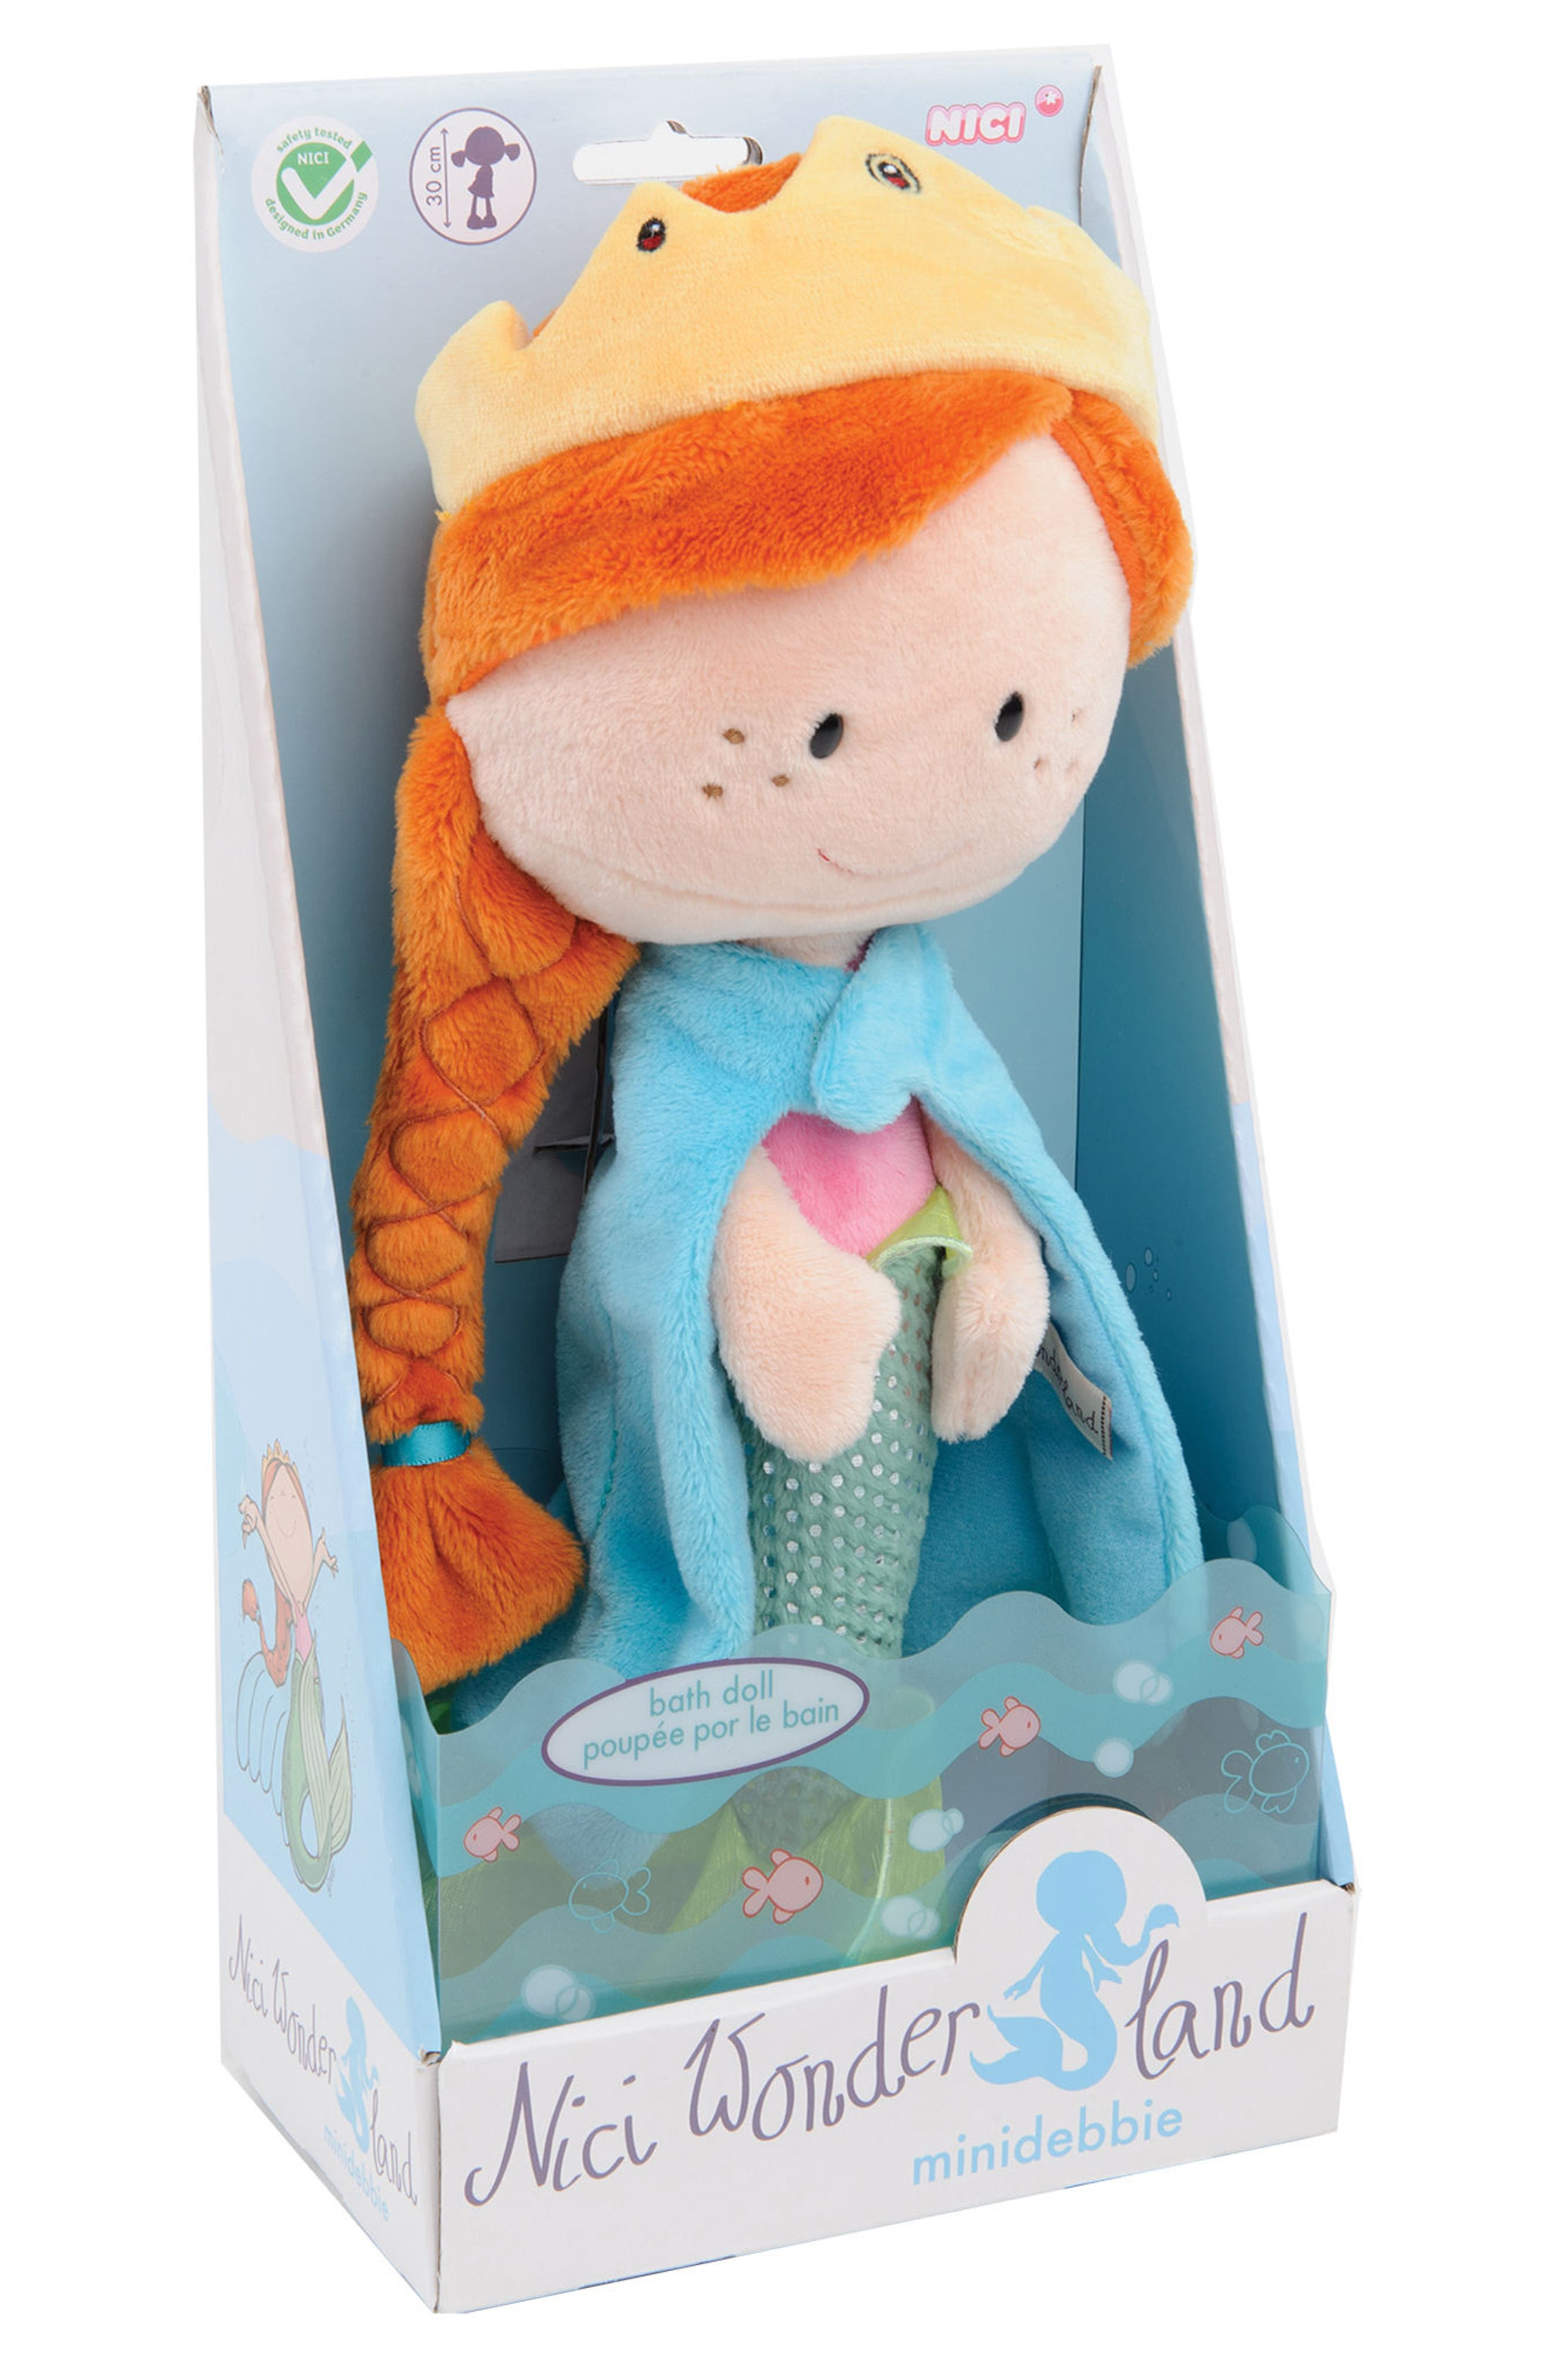 Neat Oh! Nici<sup>®</sup> Wonderland Minidebbie the Mermaid Plush Doll,                             Main thumbnail 1, color,                             400